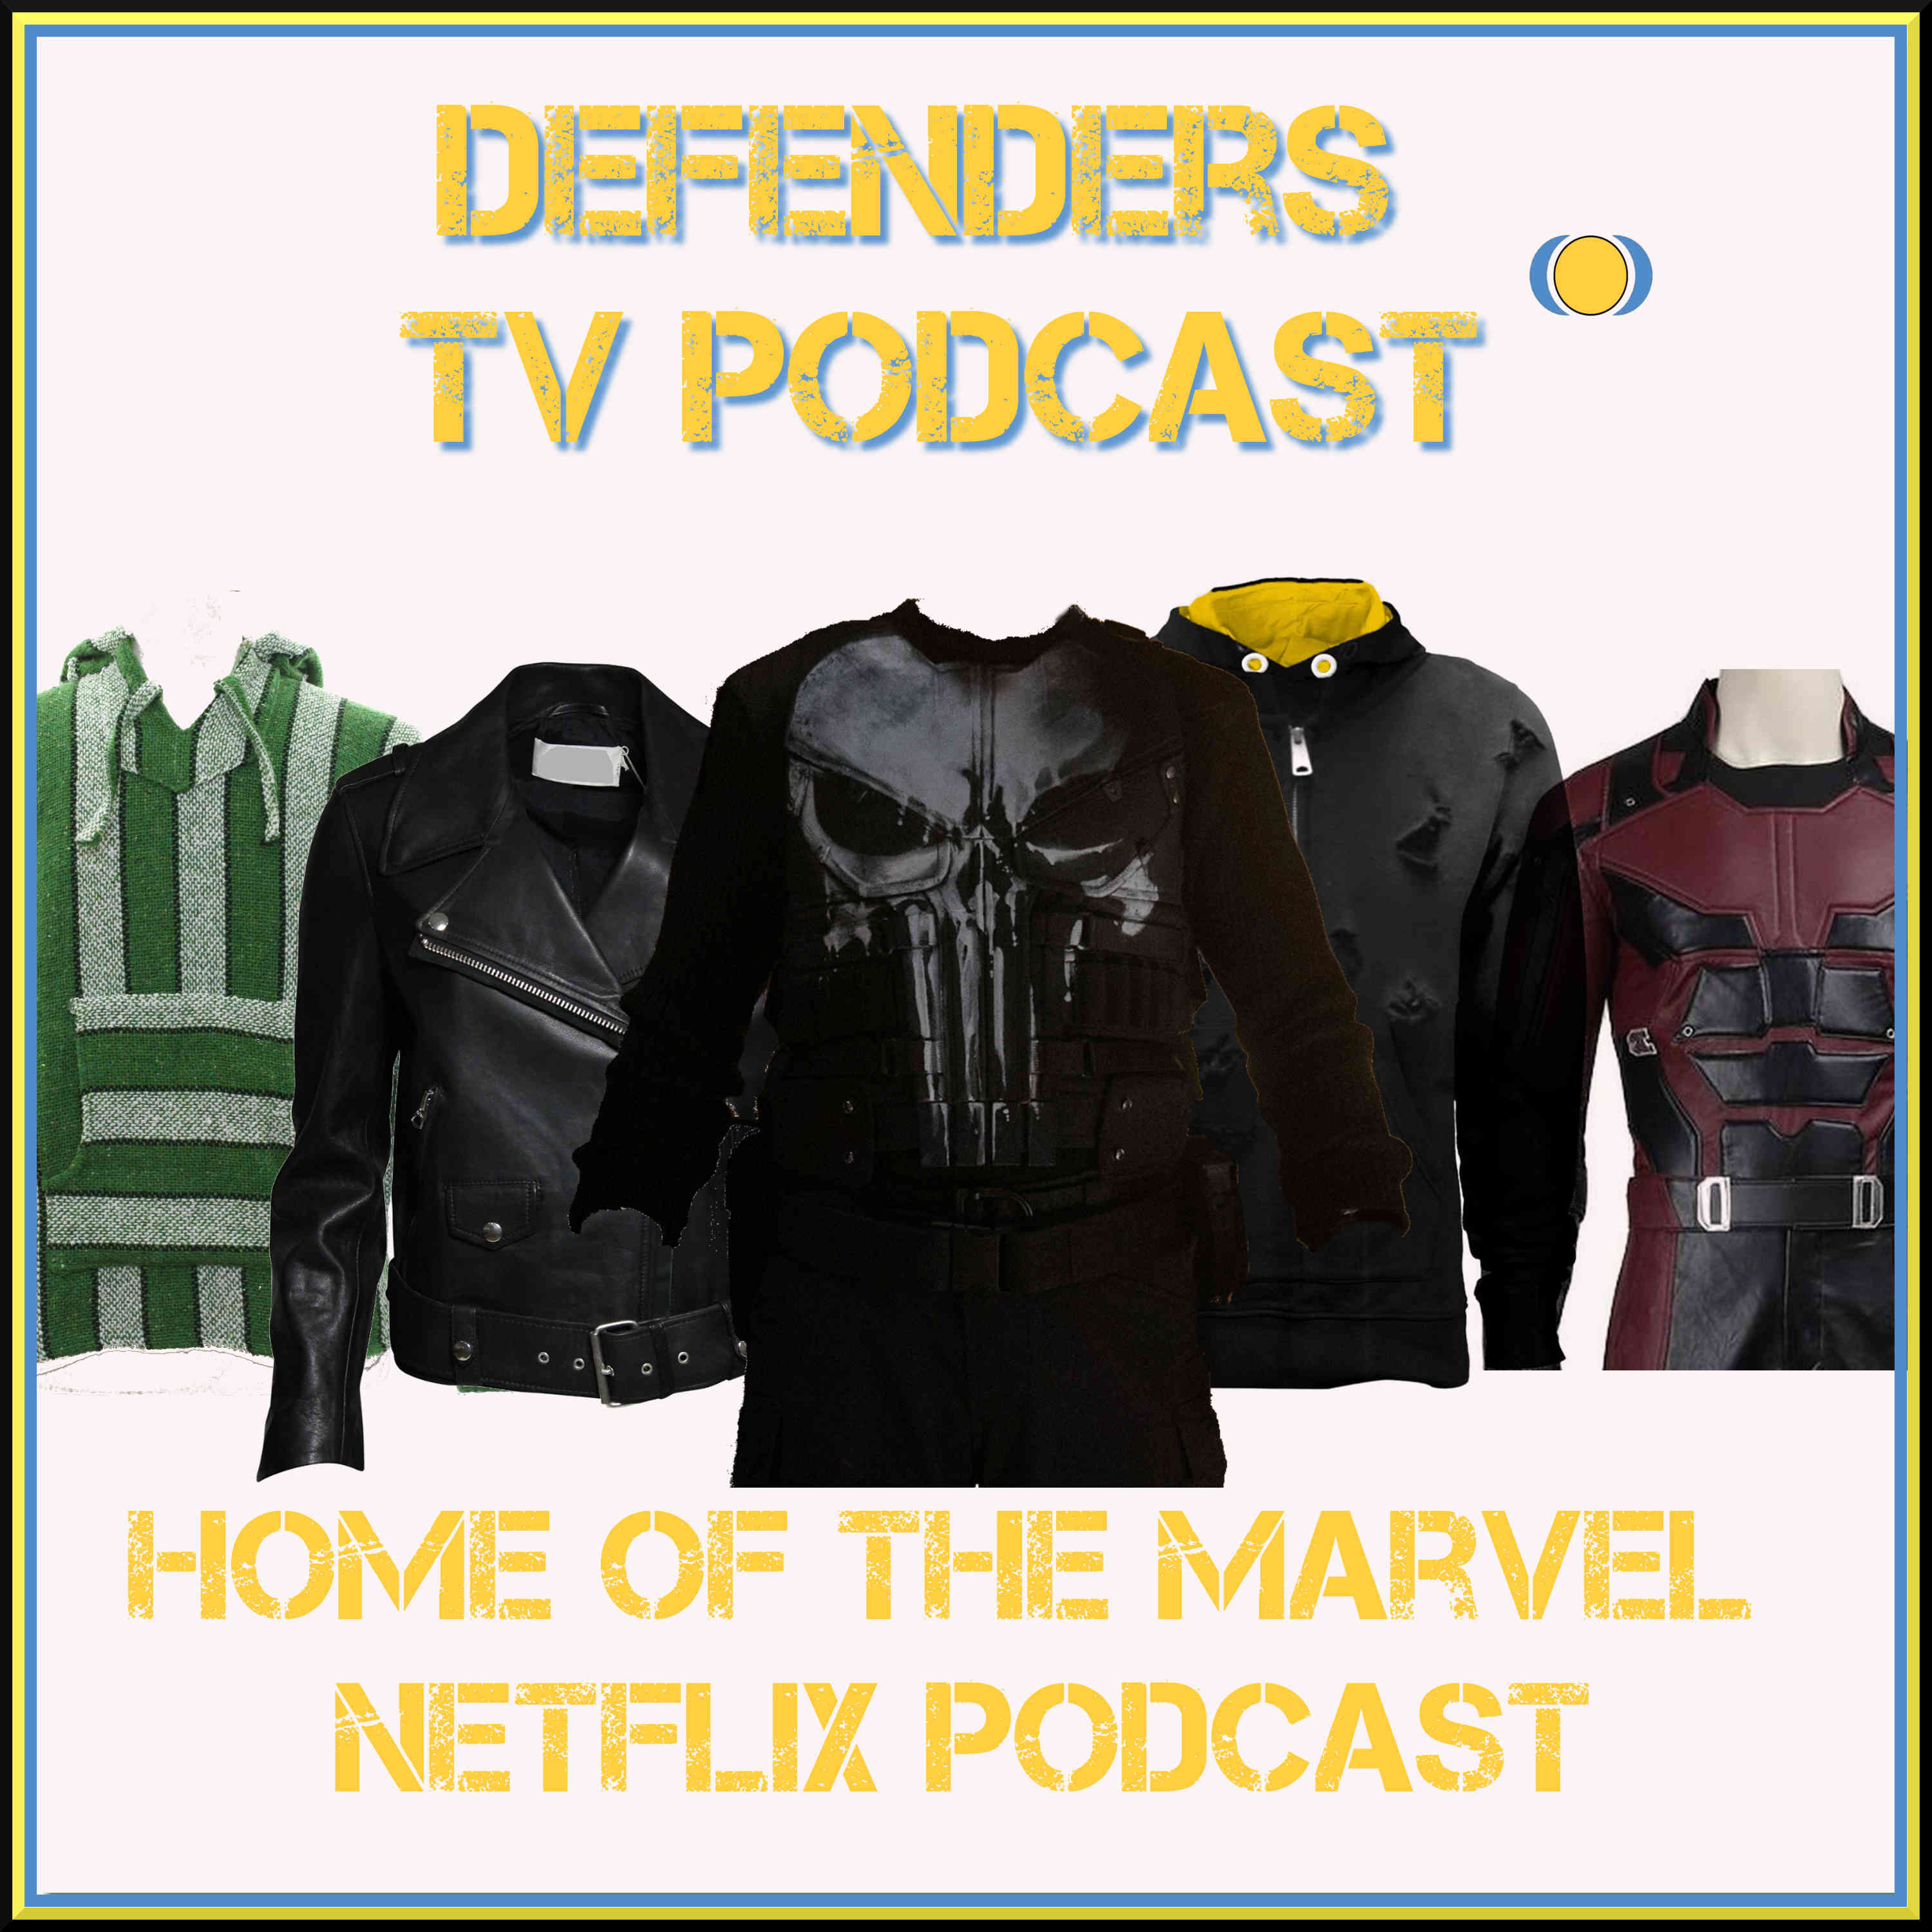 Defenders TV Podcast The home of Punisher, Daredevil, Jessica Jones, Luke Cage, Iron Fist and Thor Ragnarok